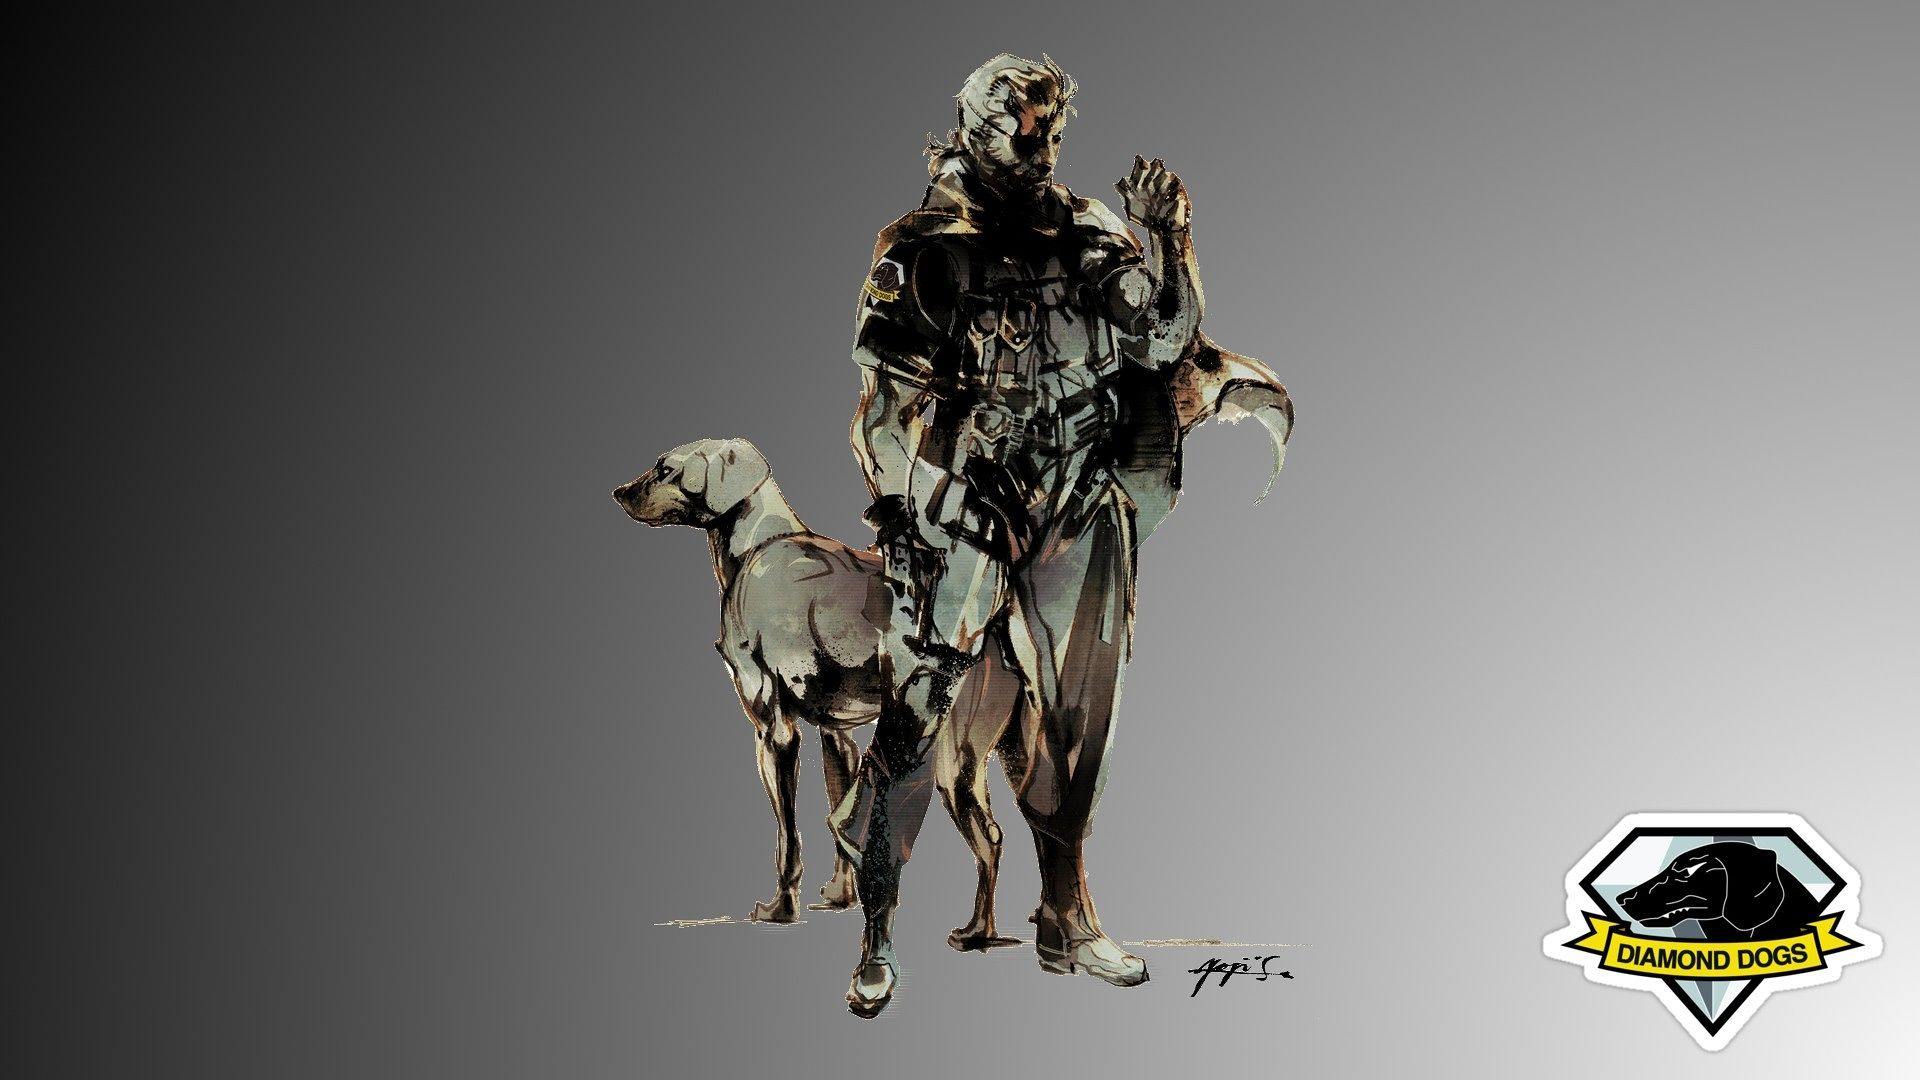 Metal-Gear-Solid-5-The-Phantom-Pain-HD-Wallpaper